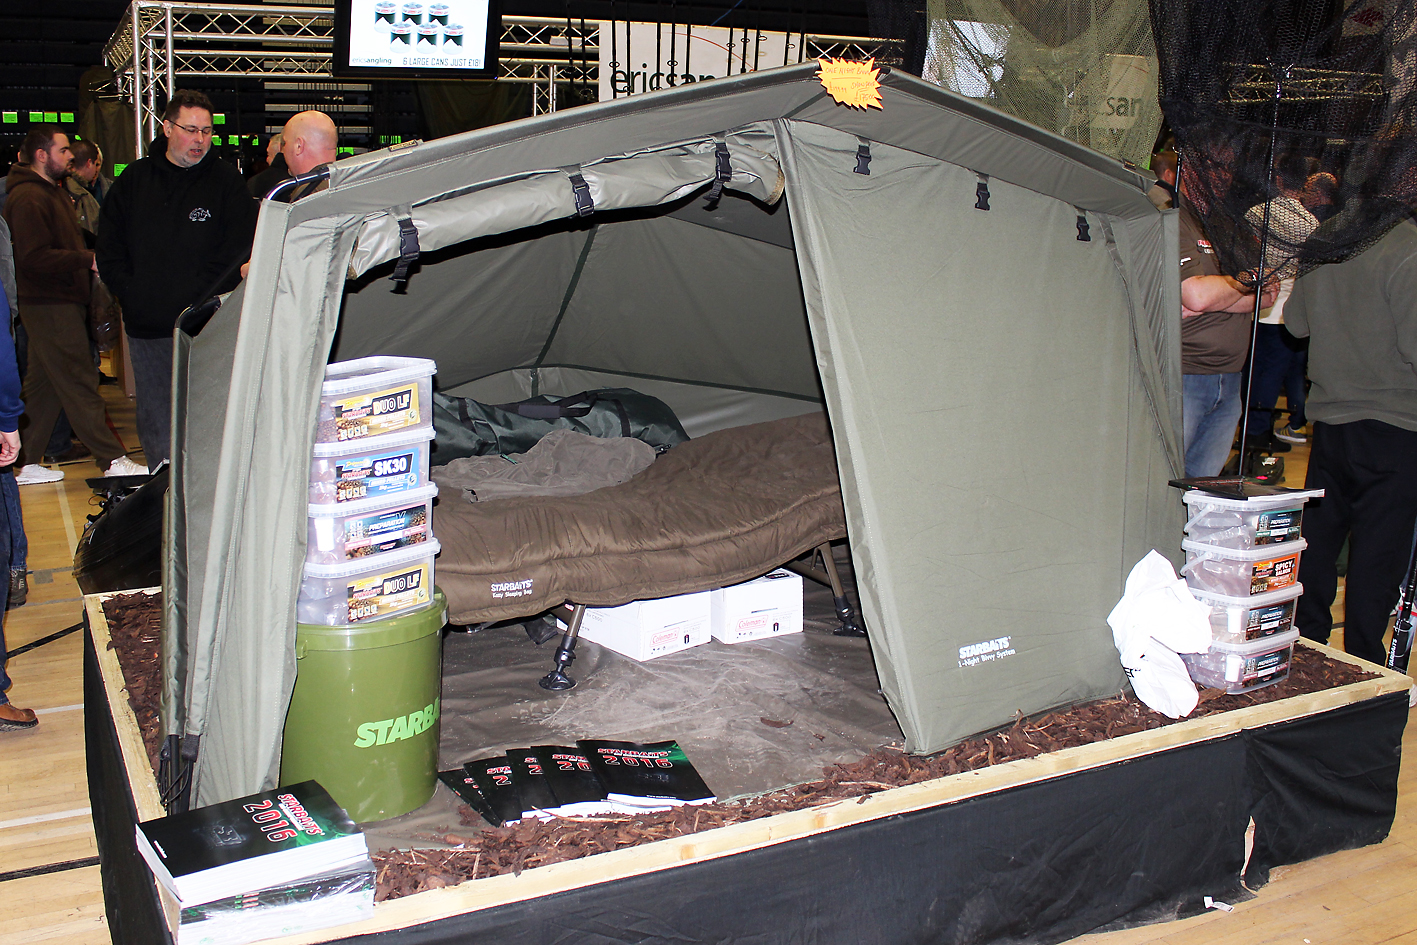 Invite the family over! Plenty of room in the 1-Night Bivvy System from SB Tackle